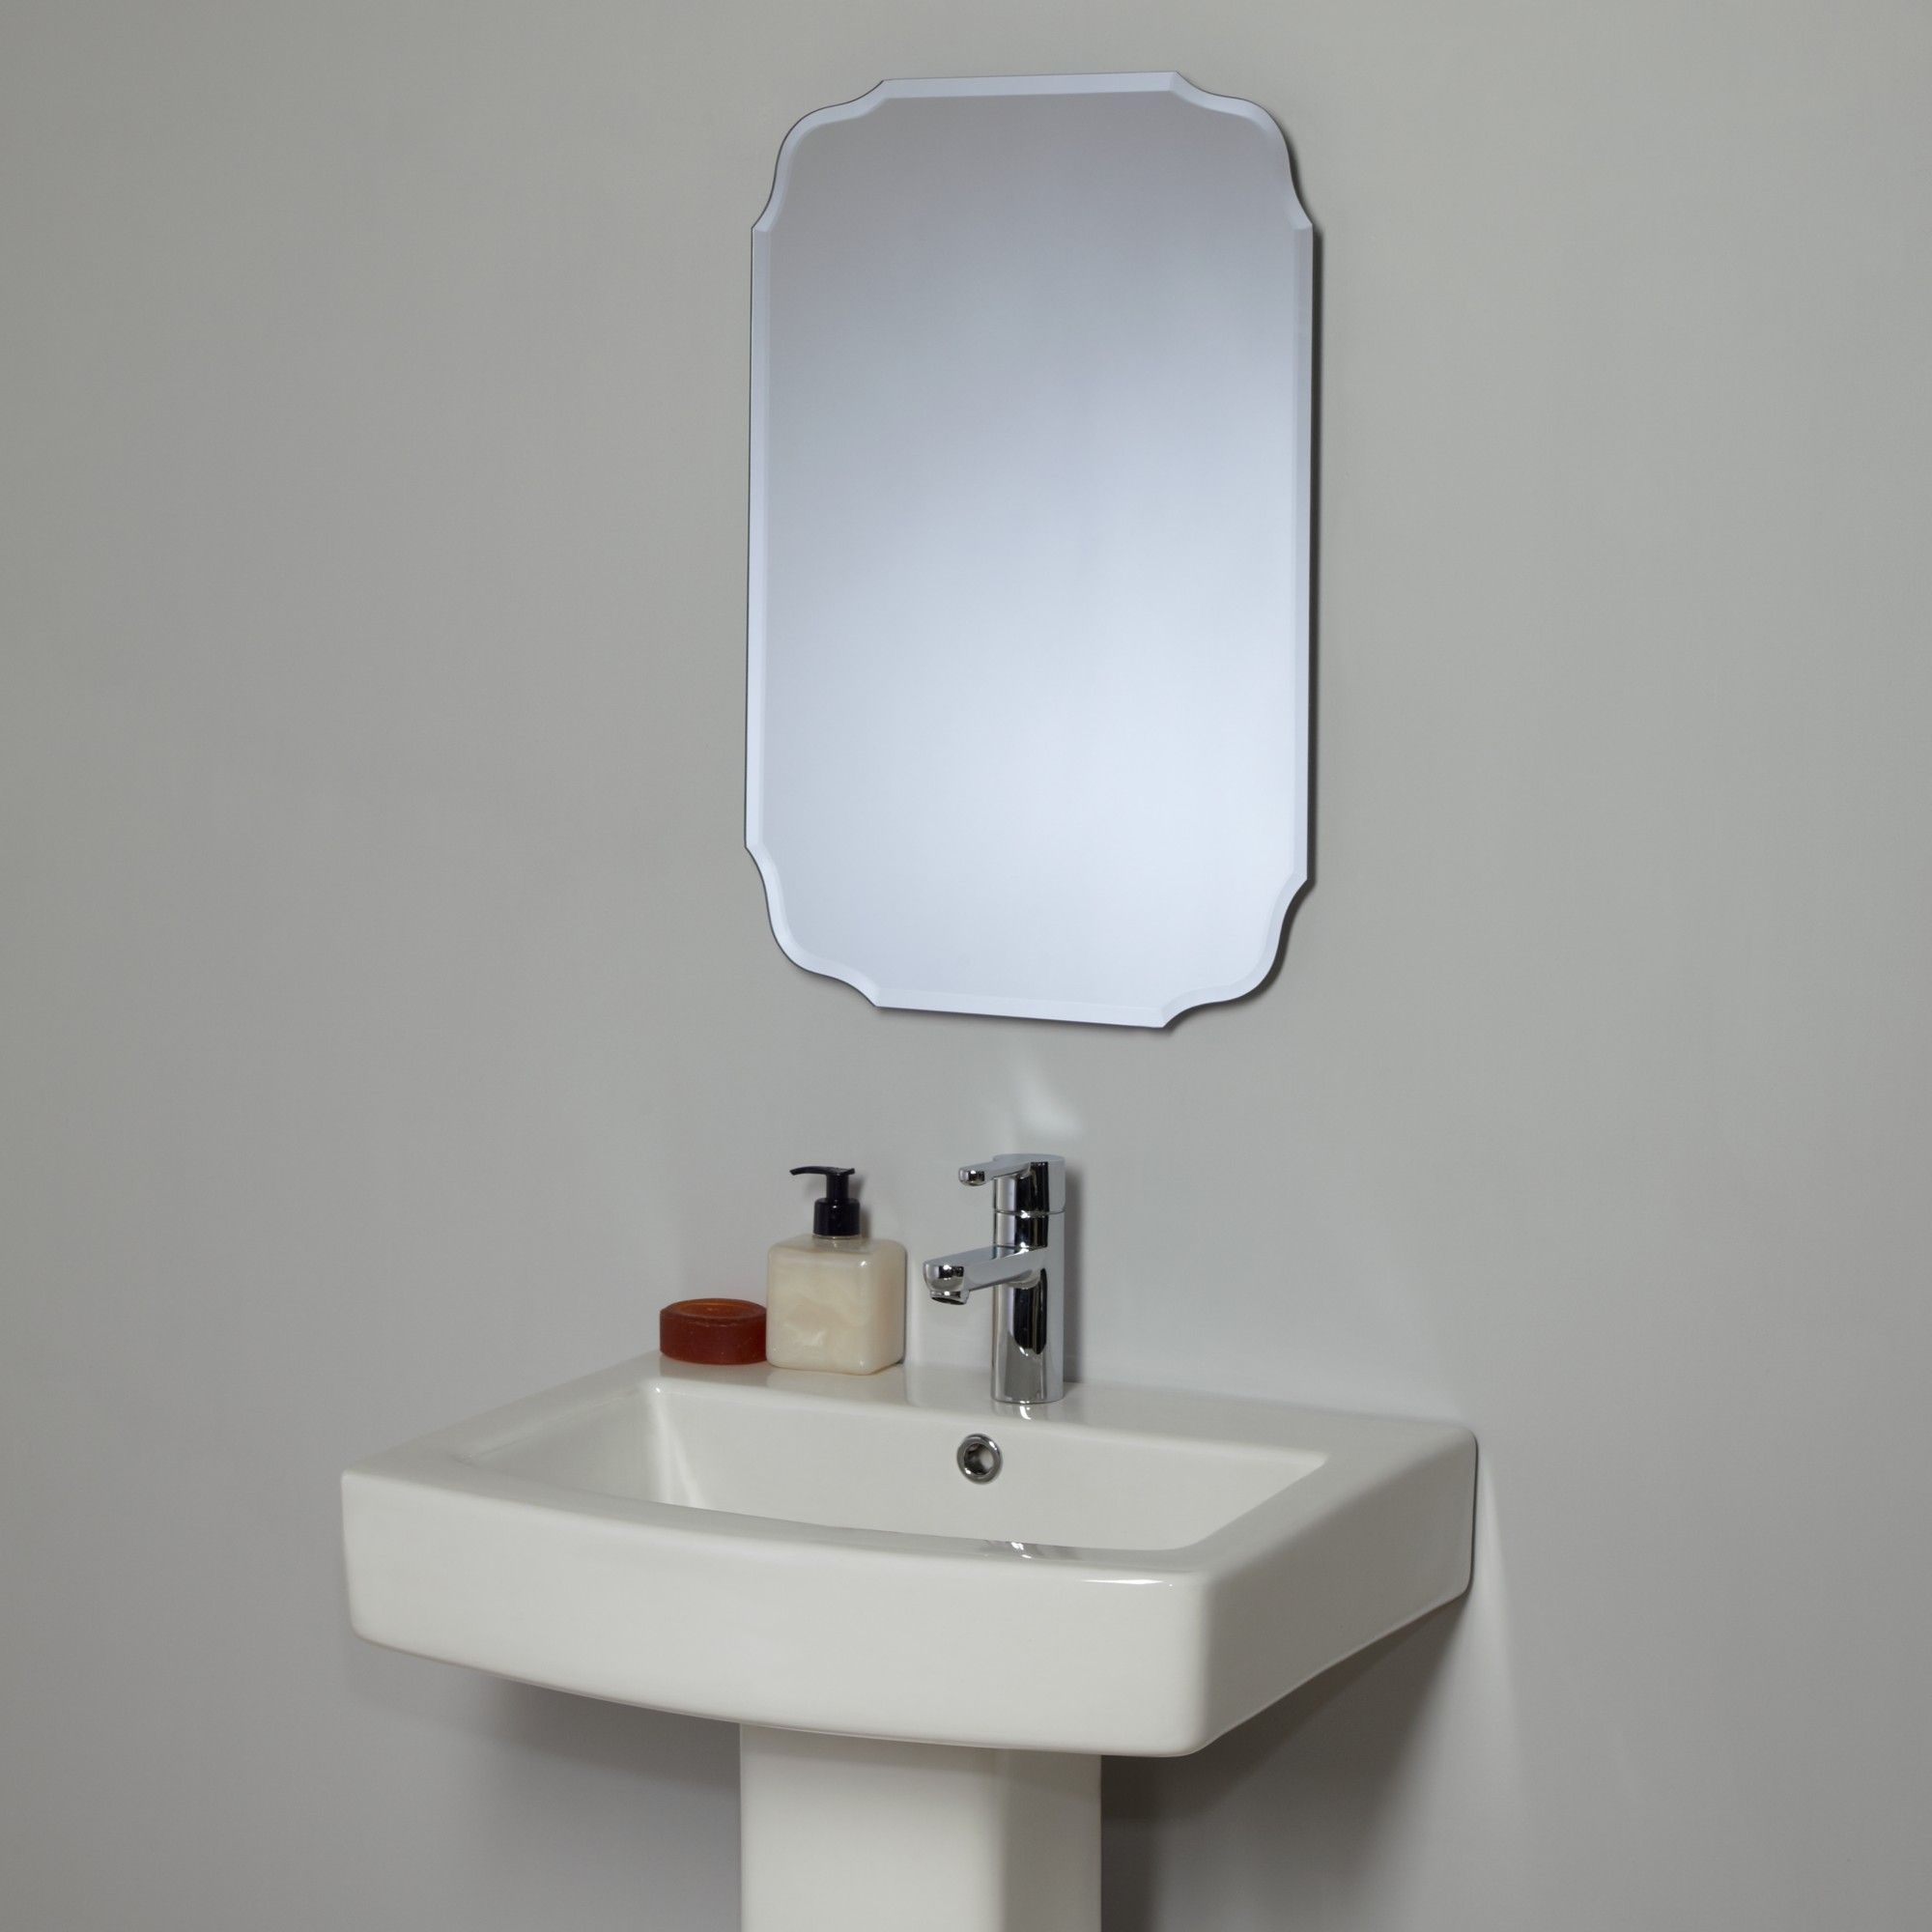 Buy John Lewis Vintage Bathroom Wall Mirror line at johnlewis